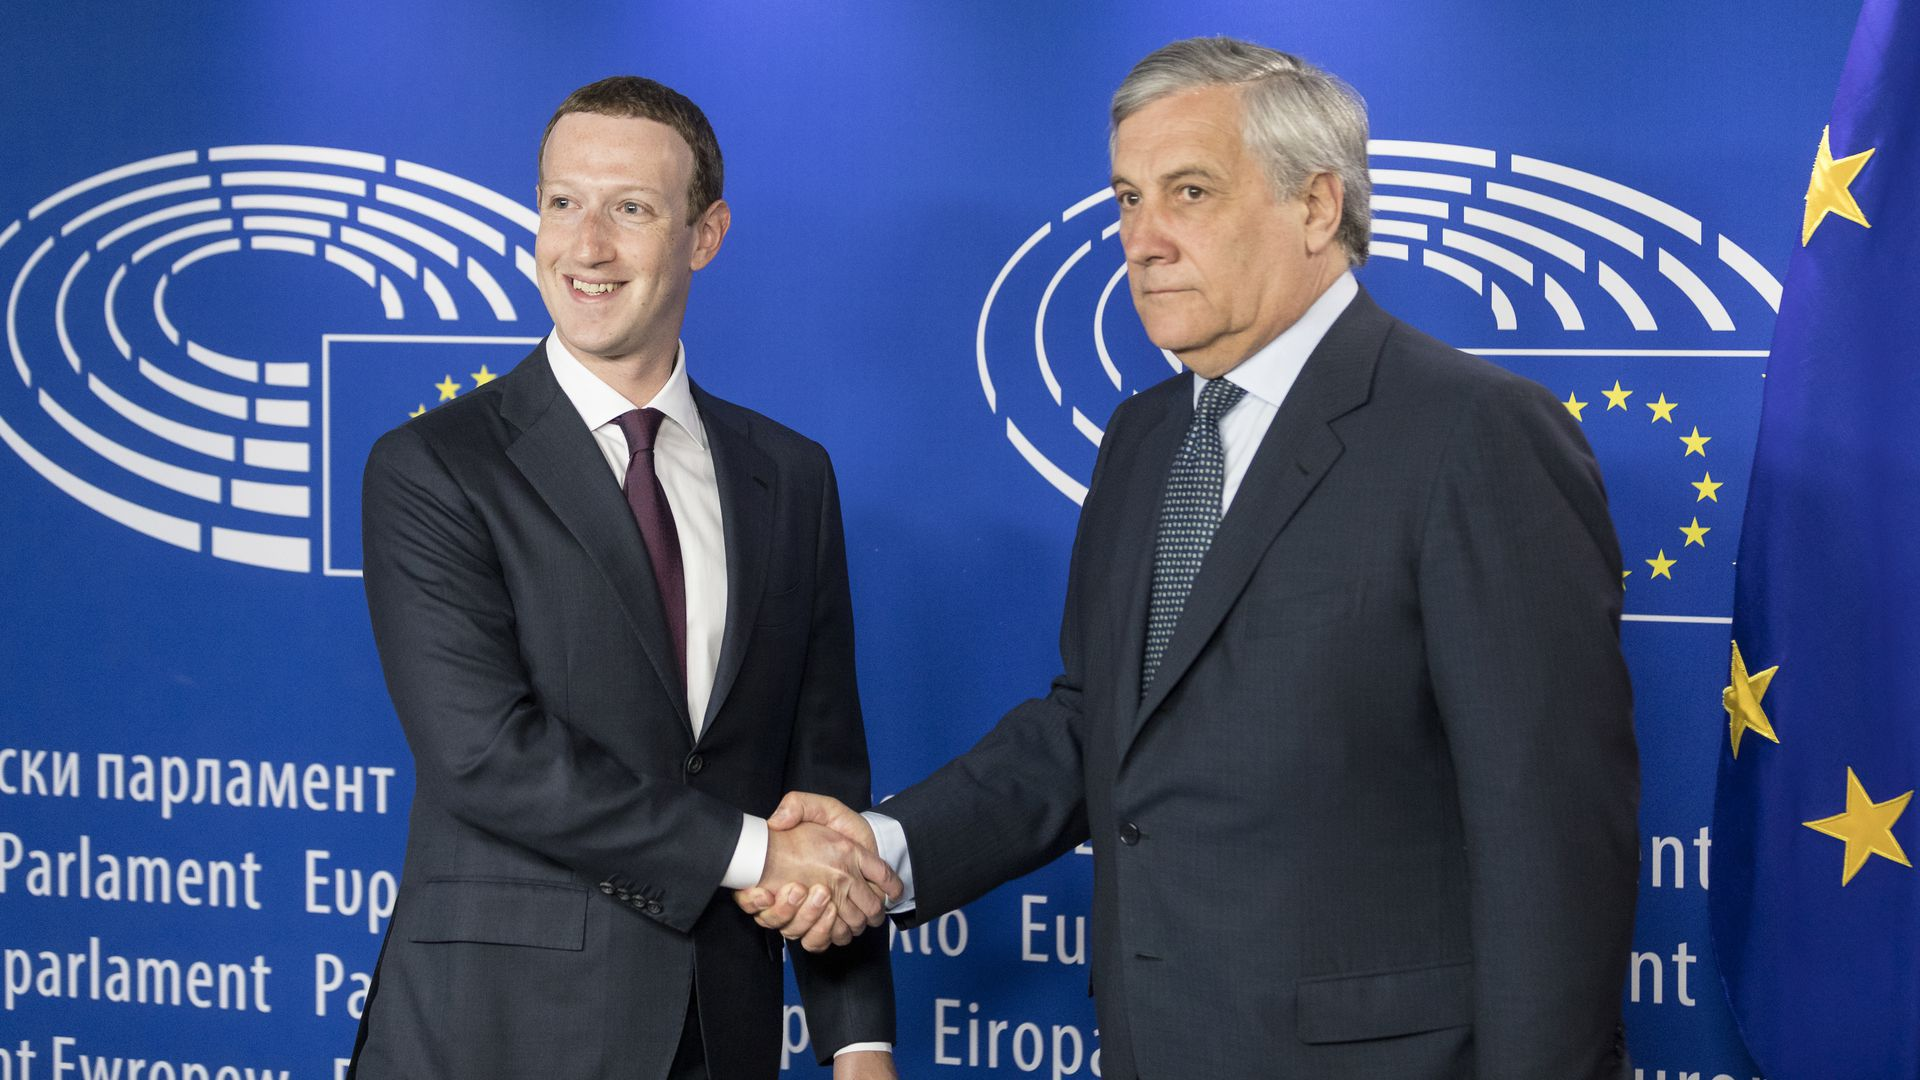 Facebook CEO Mark Zuckerberg and European Parliament President Antonio Tajani.